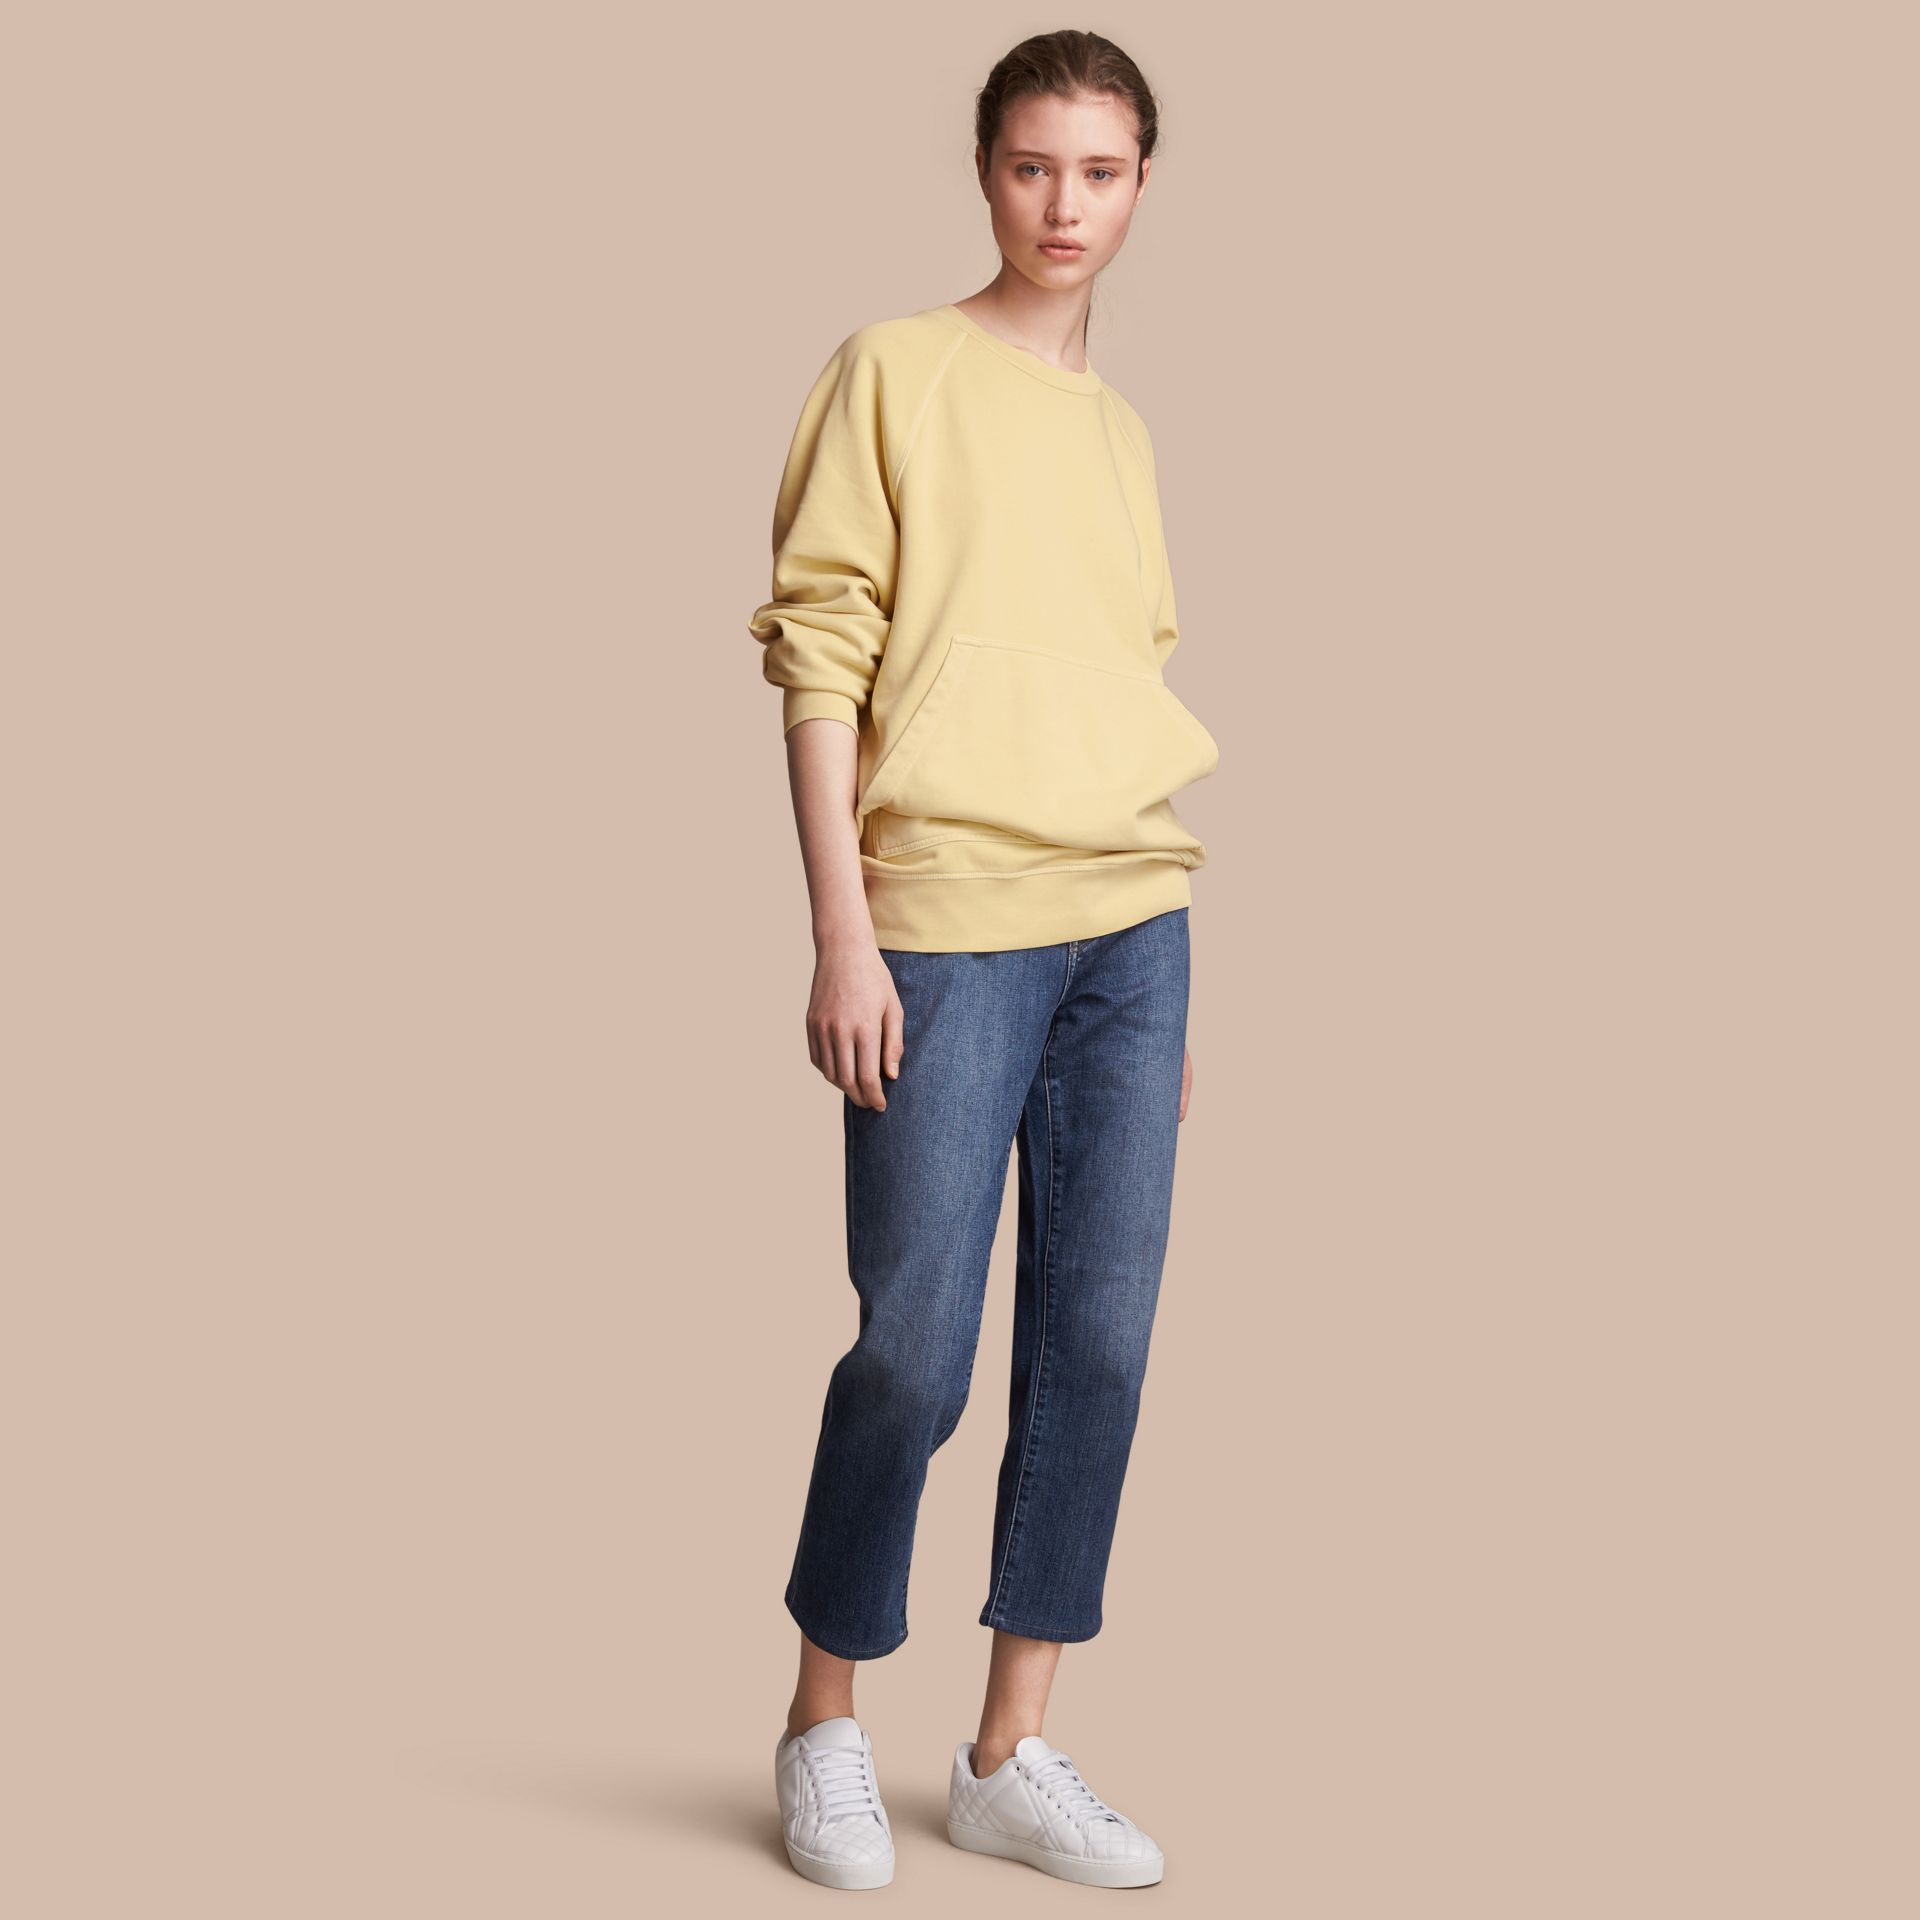 Unisex Pigment-dyed Cotton Oversize Sweatshirt in Pale Yellow - Women | Burberry - gallery image 1